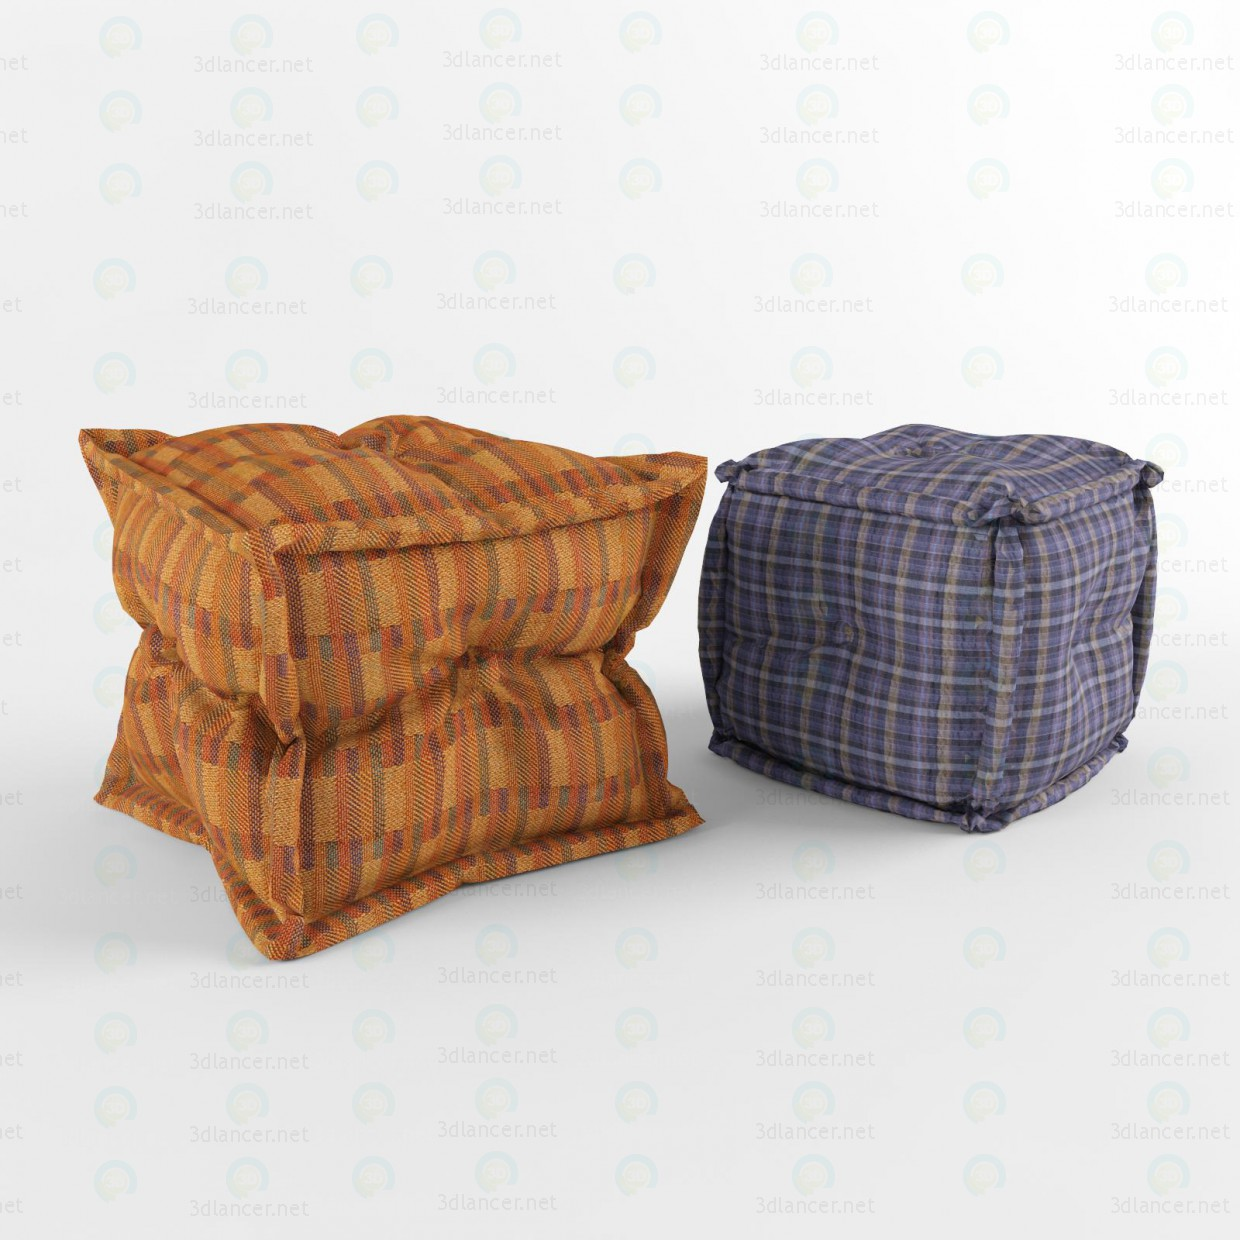 3d modeling Square Ottomans model free download